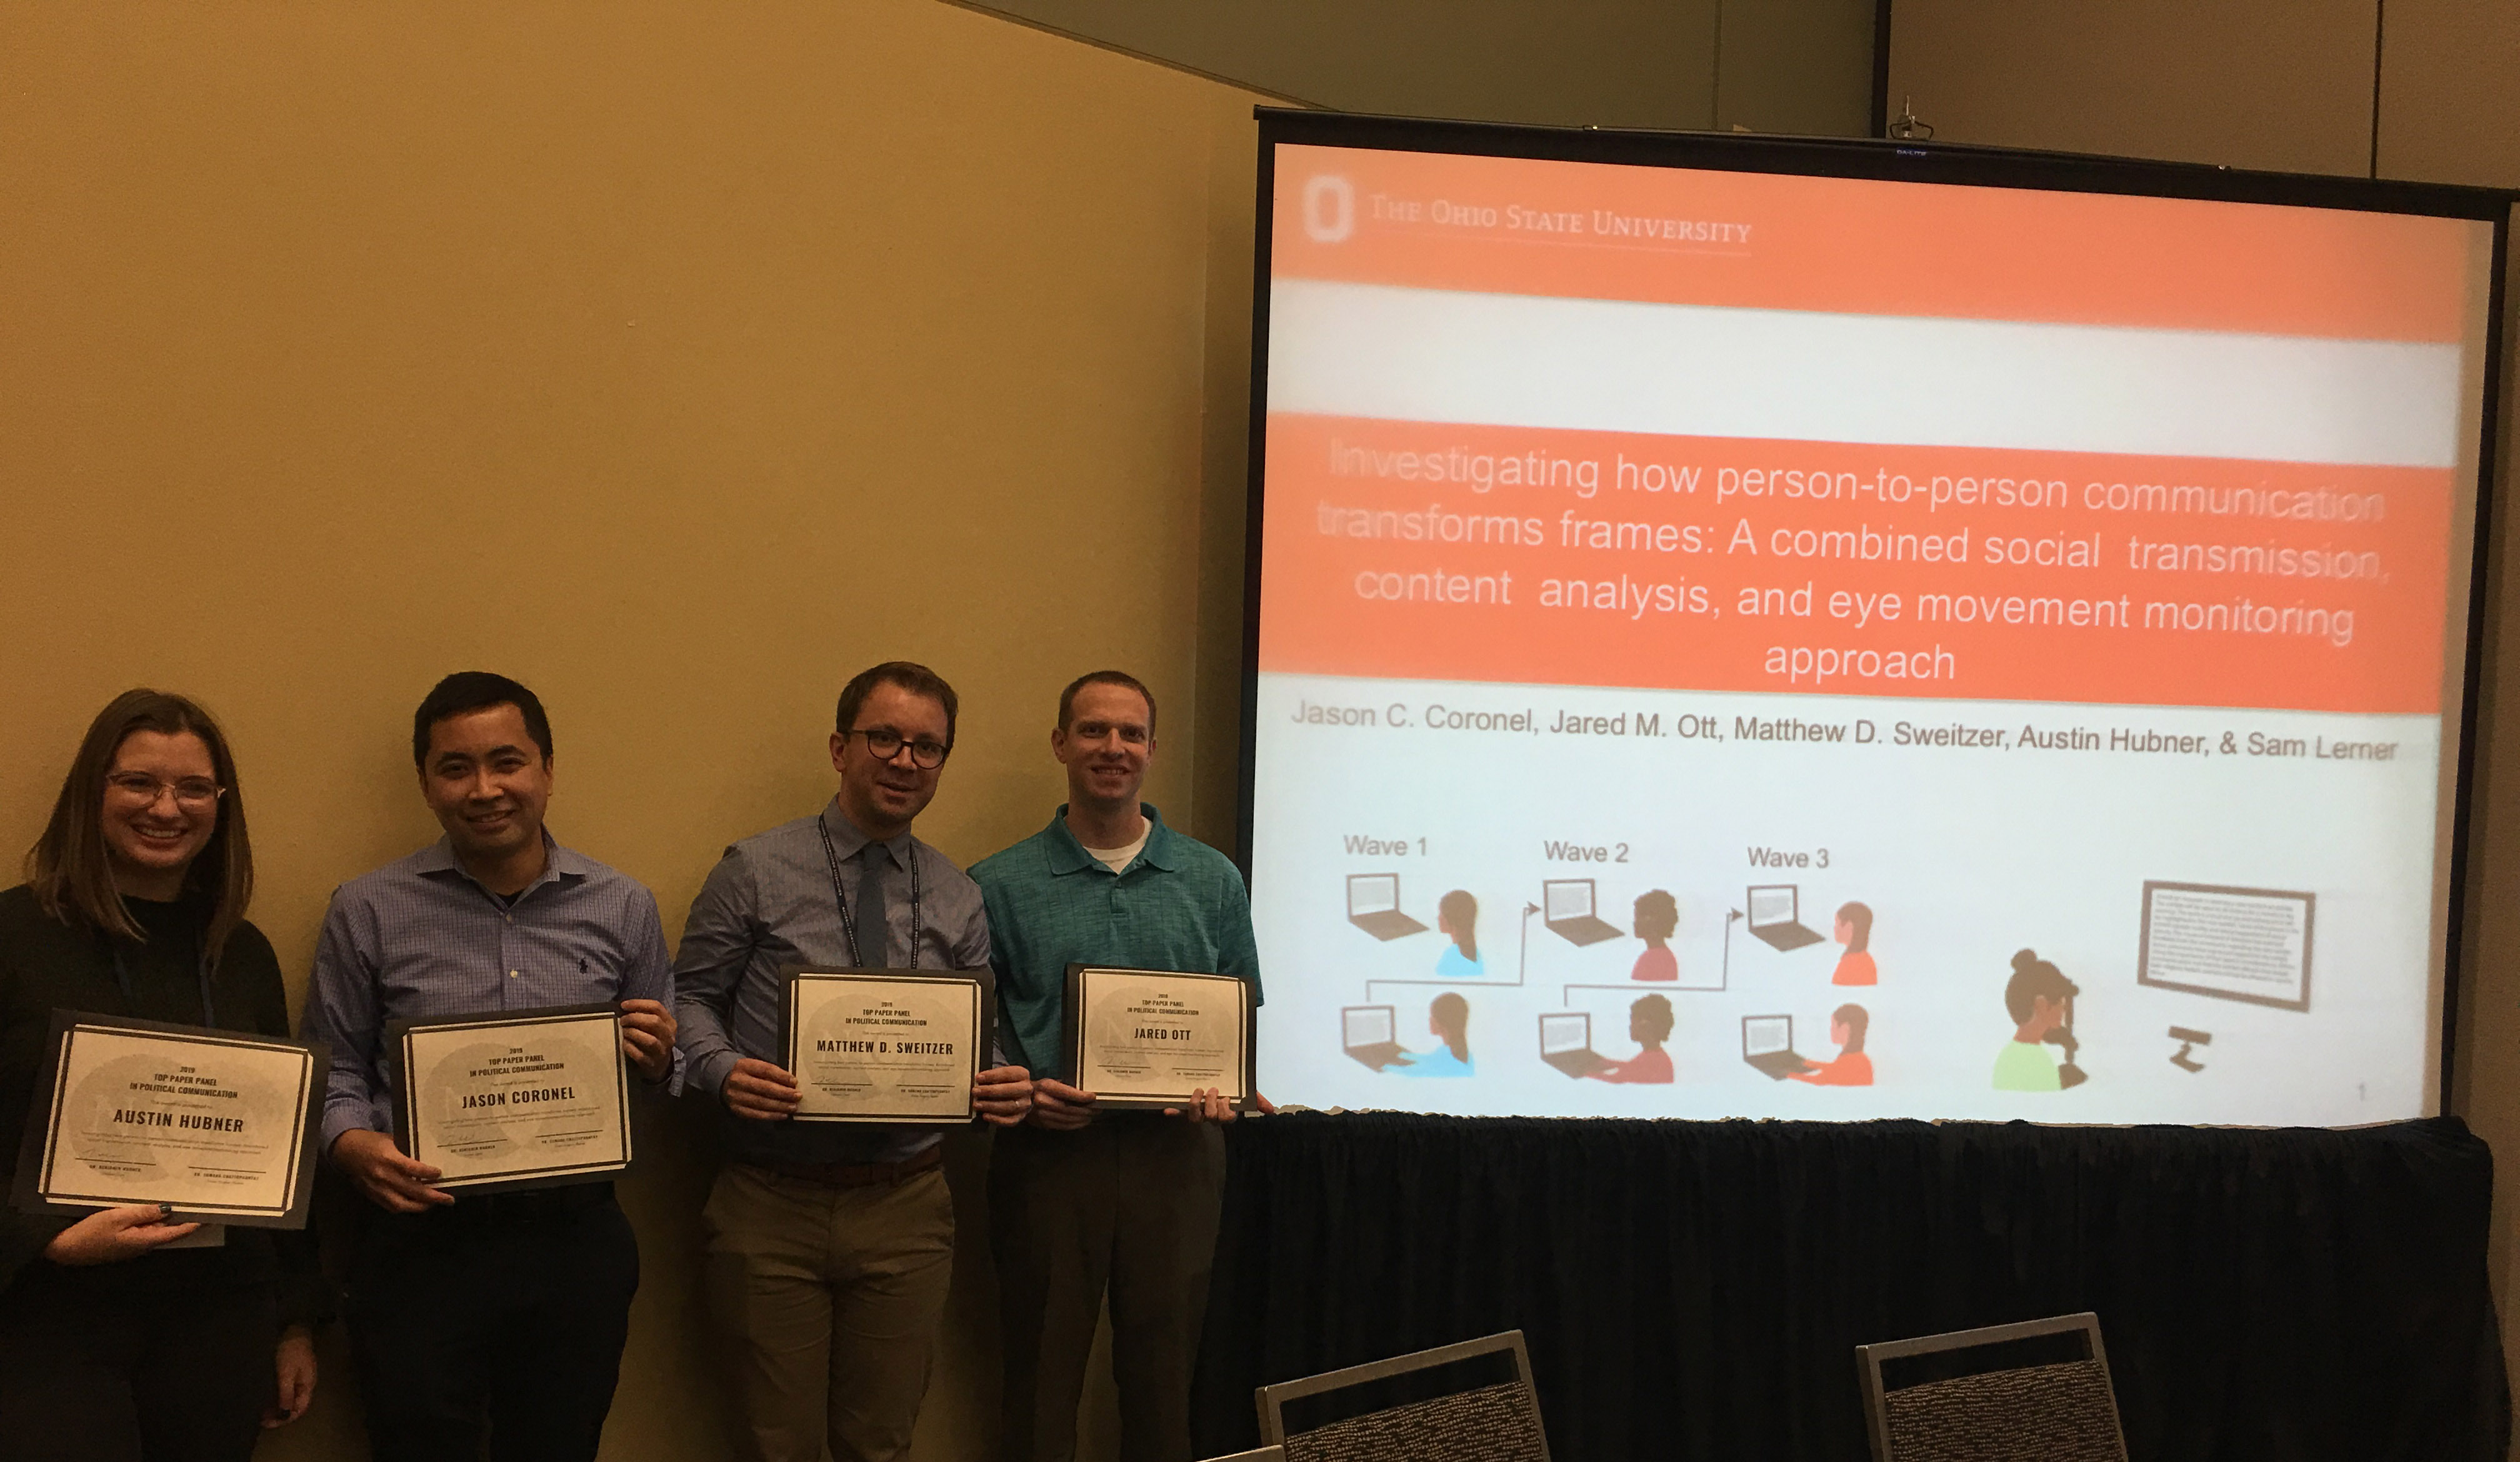 We won a Top Paper Award at NCA.